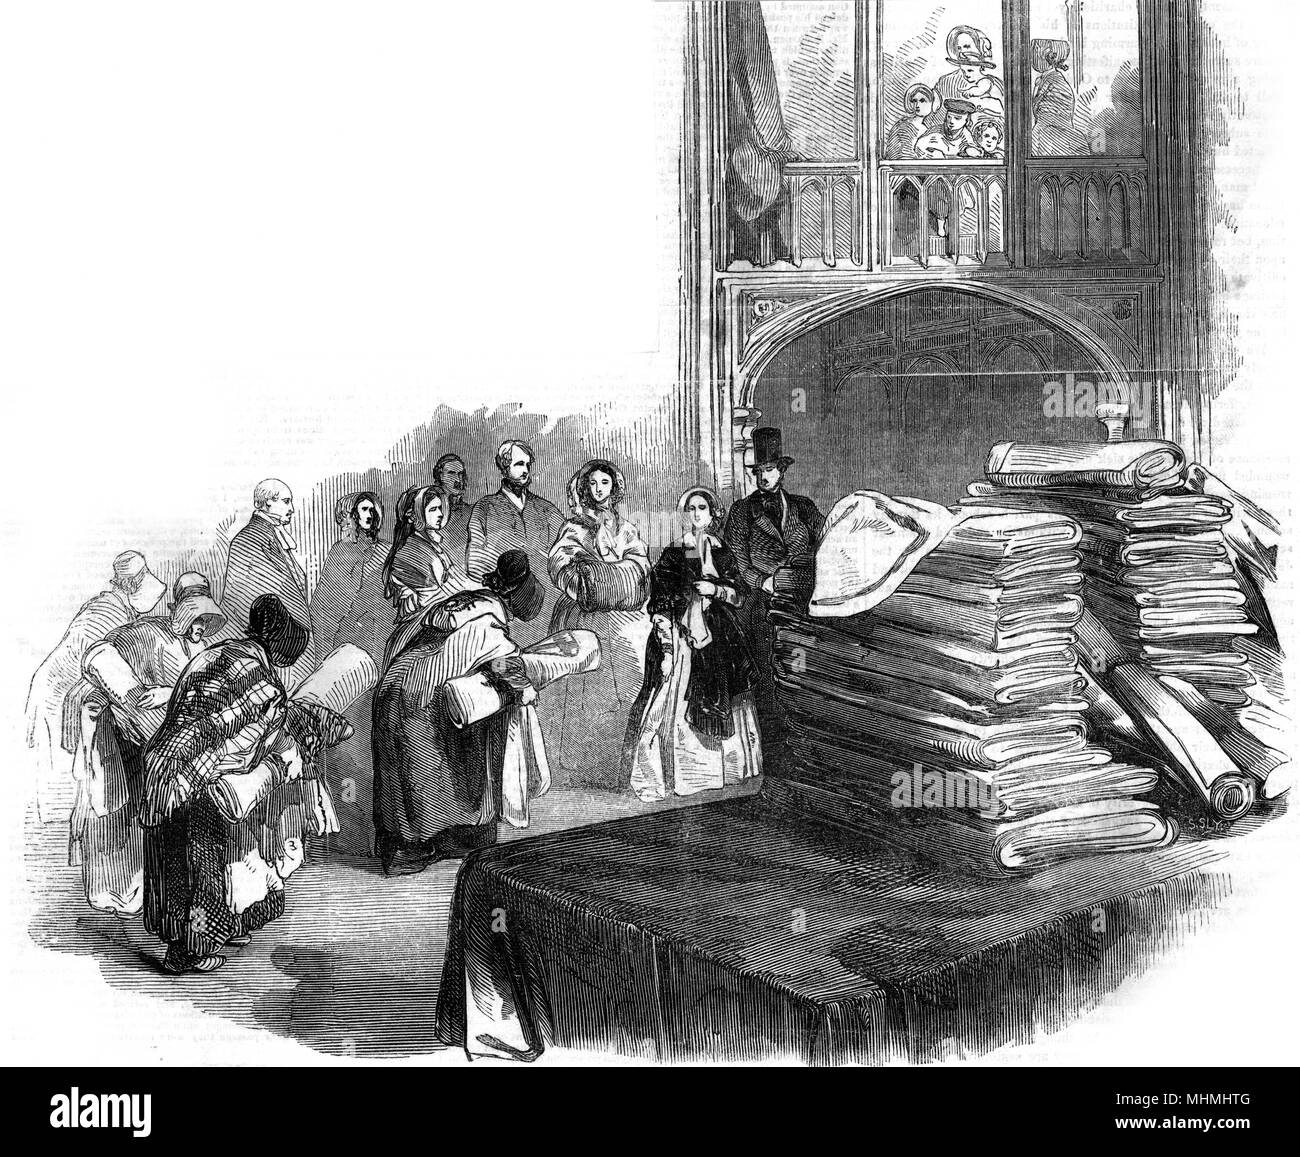 Distributing the Queen's Bounty to selected deserving poor, on New Year's Day      Date: 1846 - Stock Image